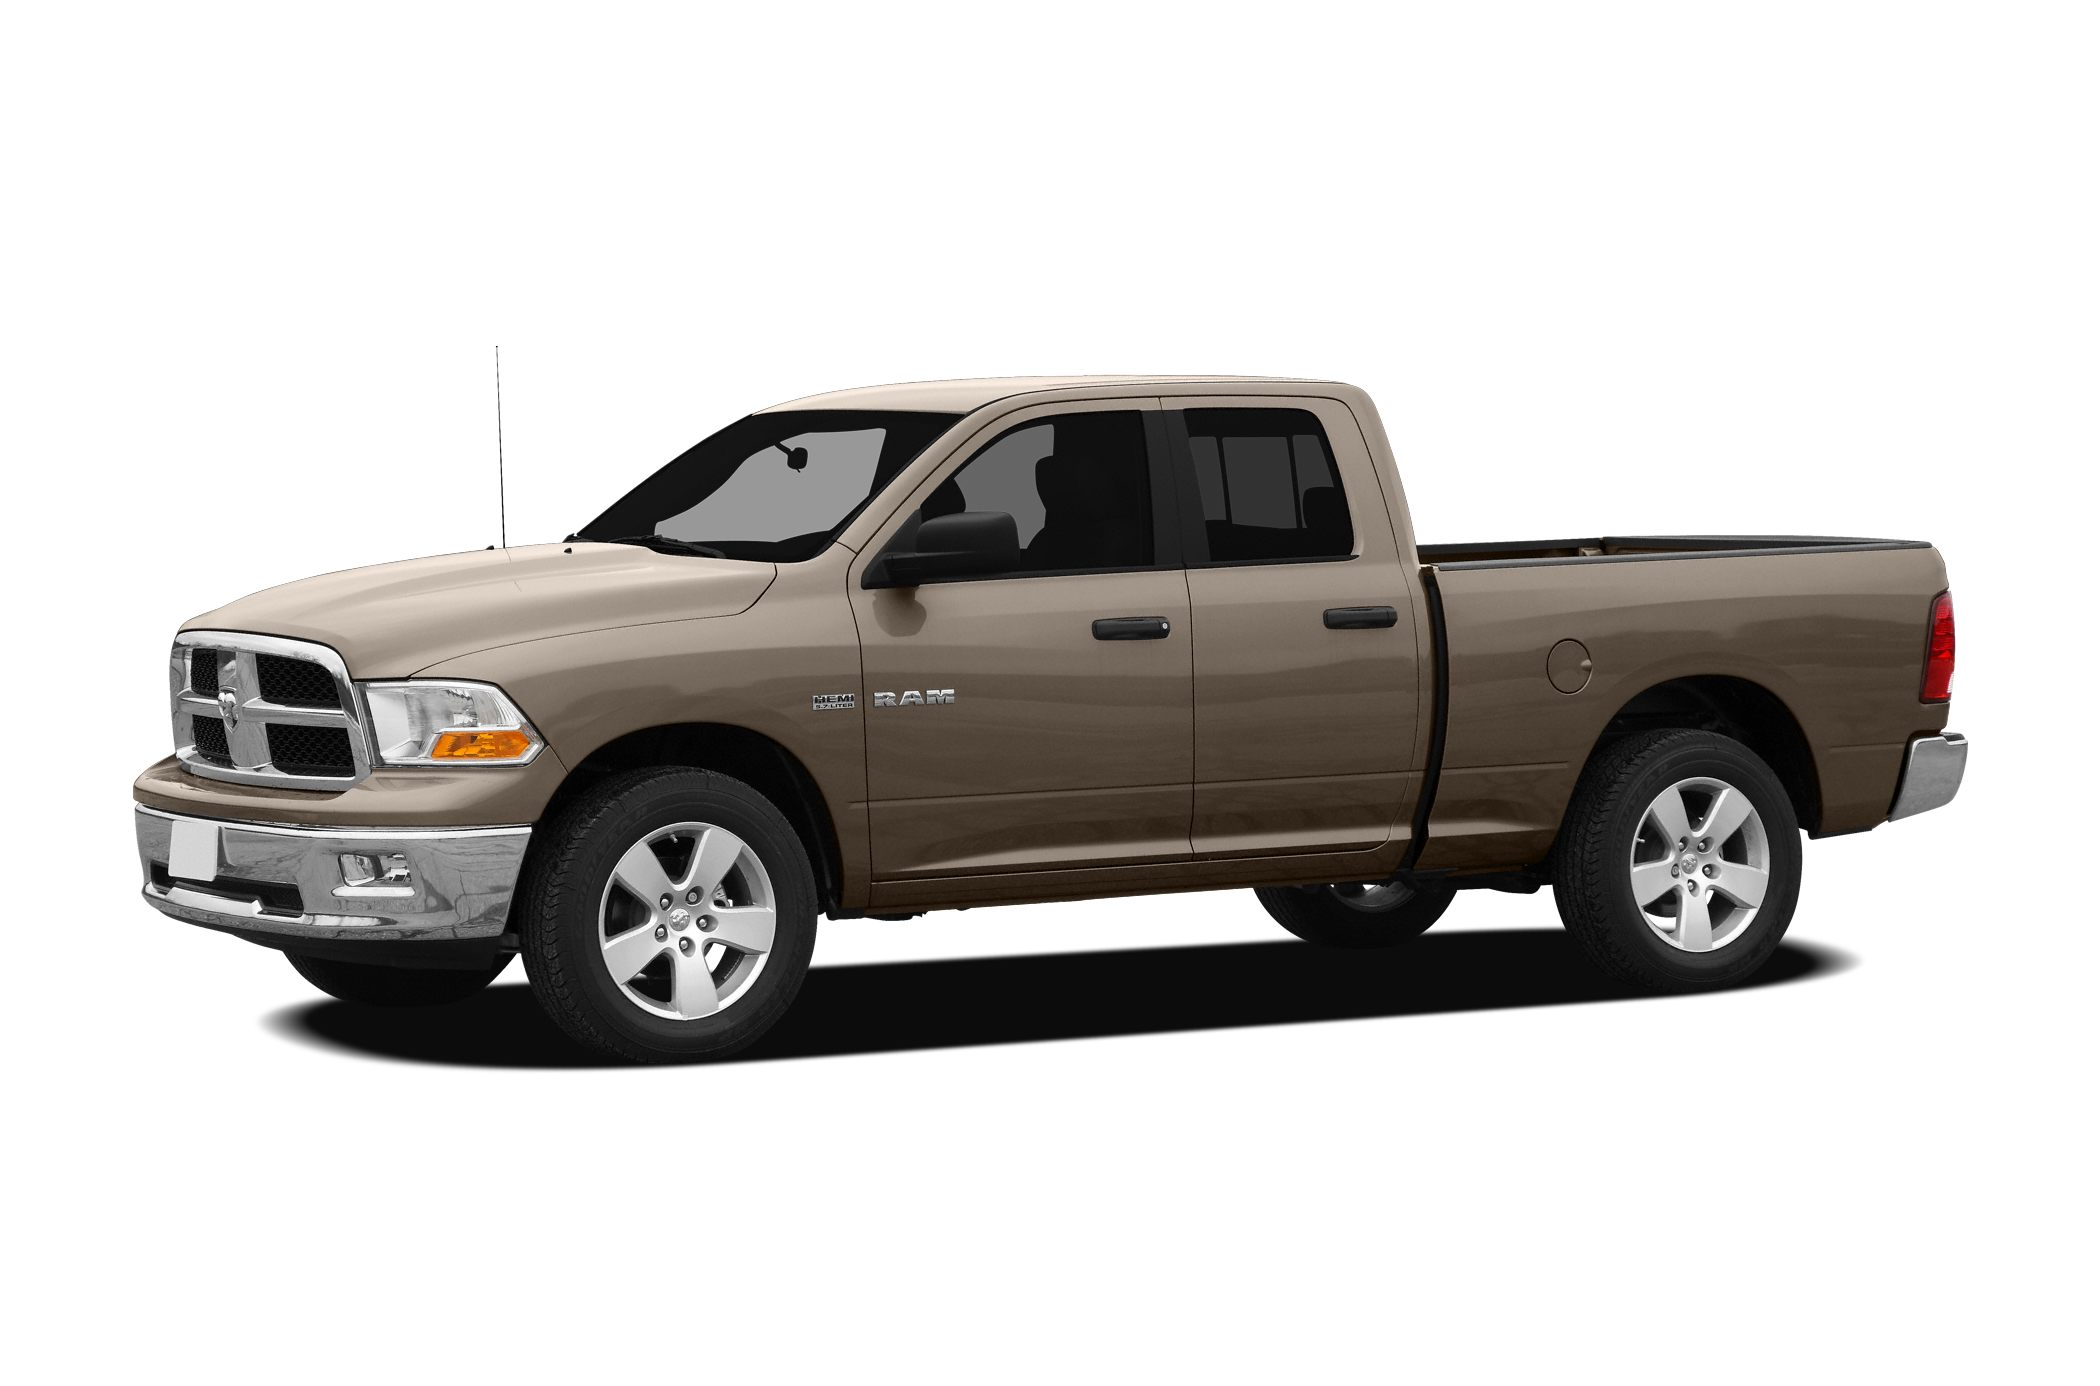 2010 Dodge Ram 1500 SLTSportTRX Miles 53051Color Red Stock 16MU58B VIN 1D7RB1GTXAS249781